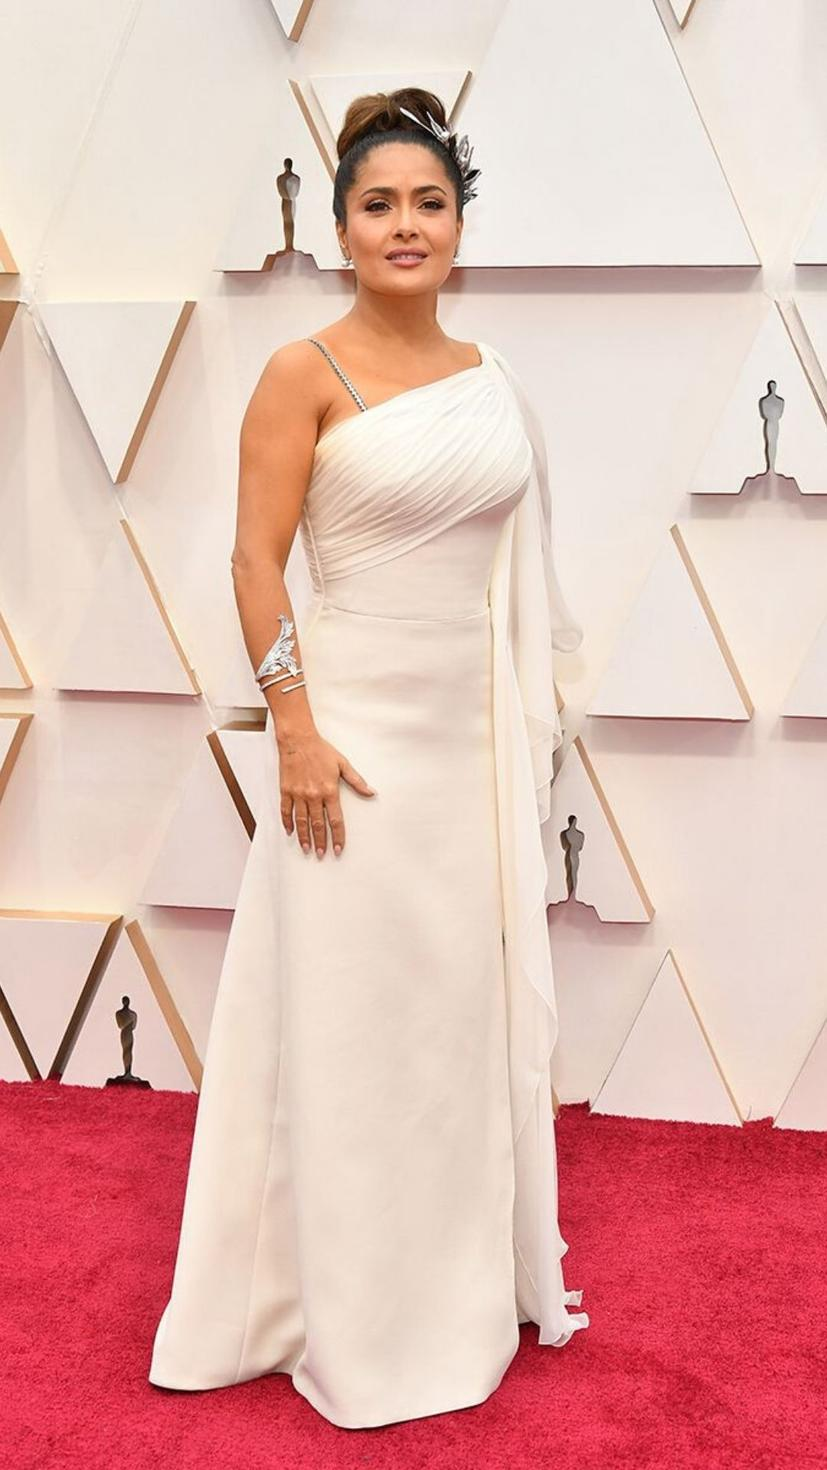 Salma Hayek wears a gown from Gucci and jewellery from Boucheron